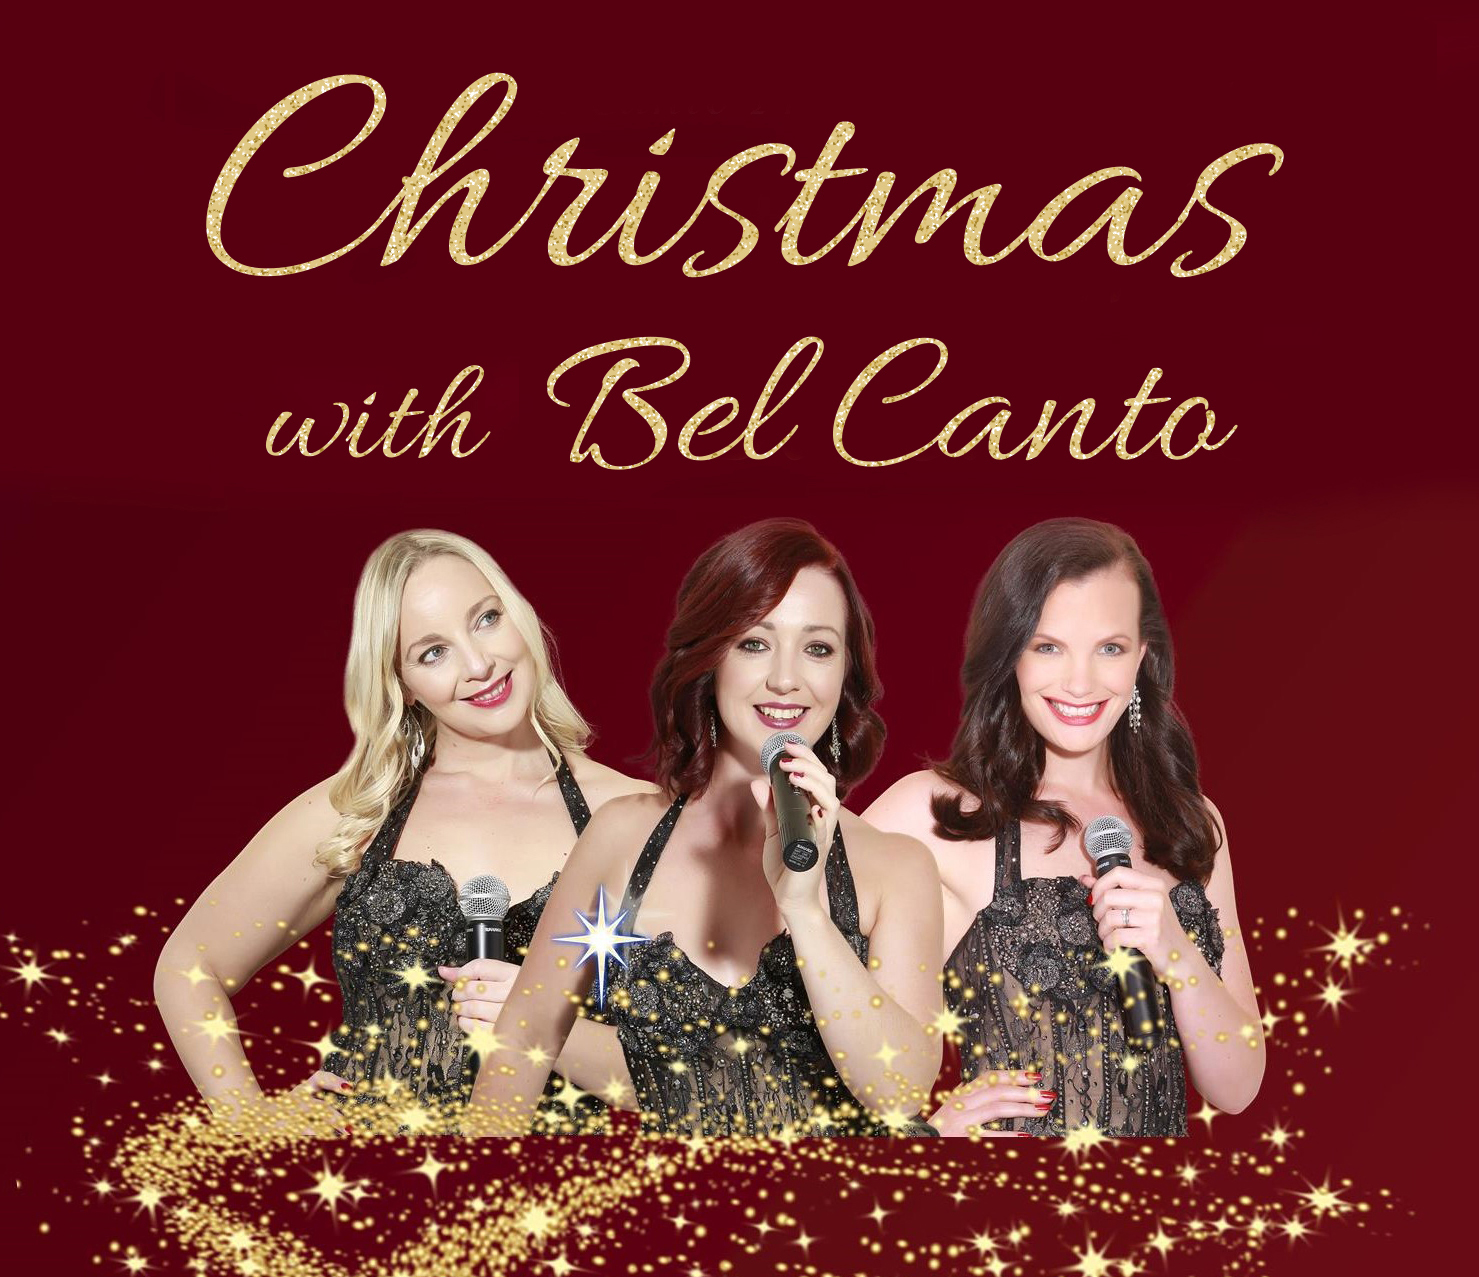 Christmas with Bel Canto